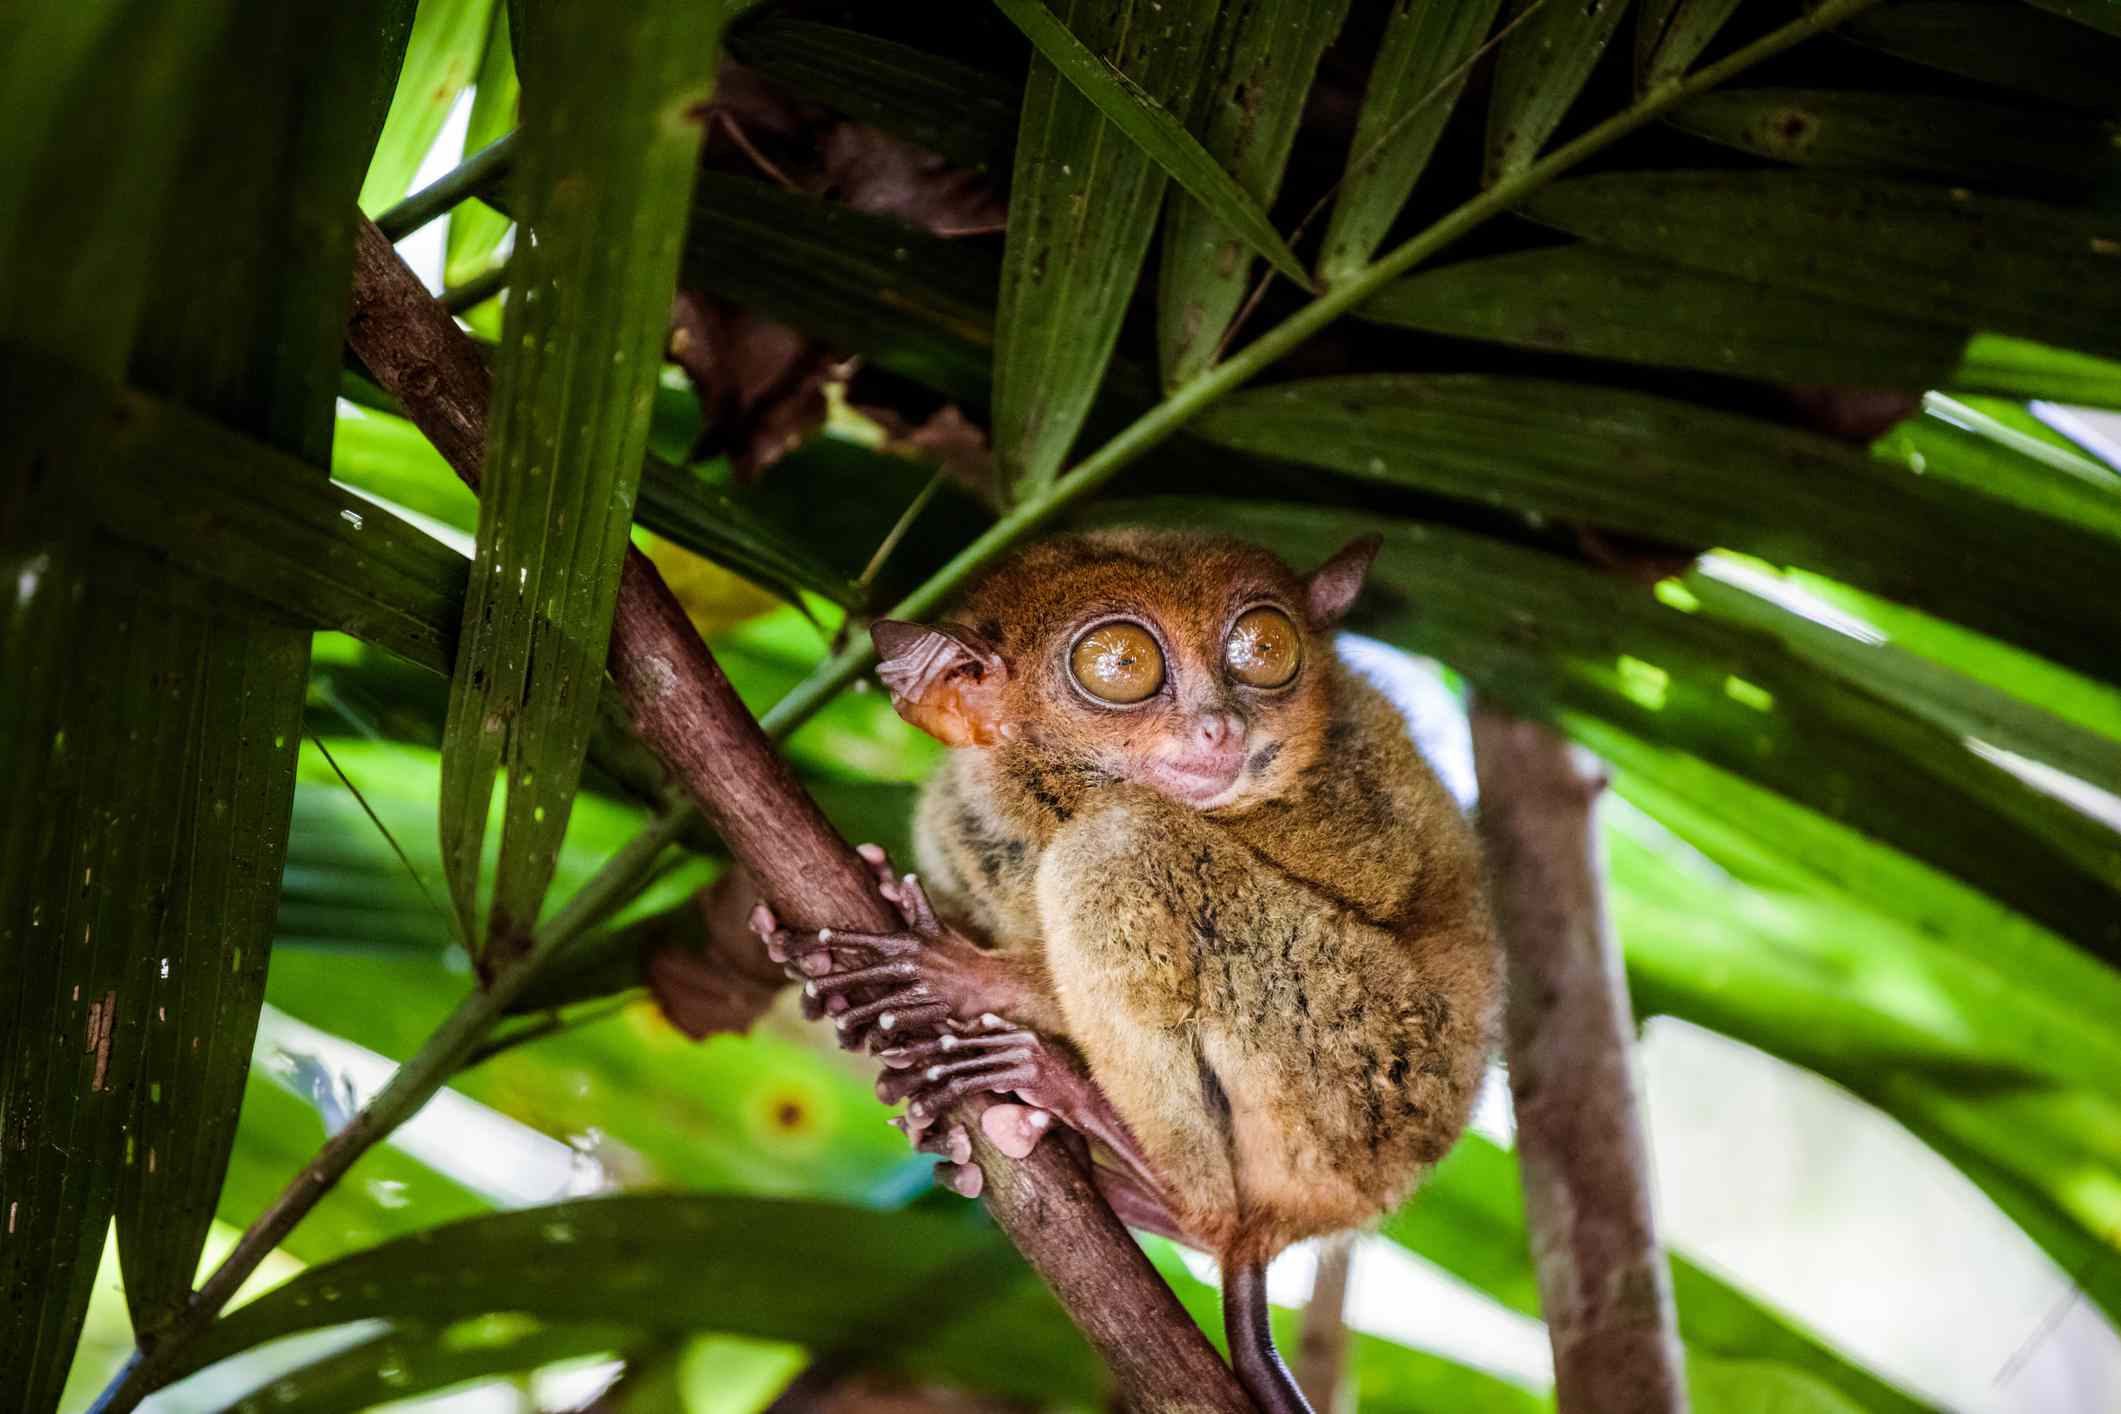 A brown Philippine tarsier with huge amber eyes clutching a palm tree